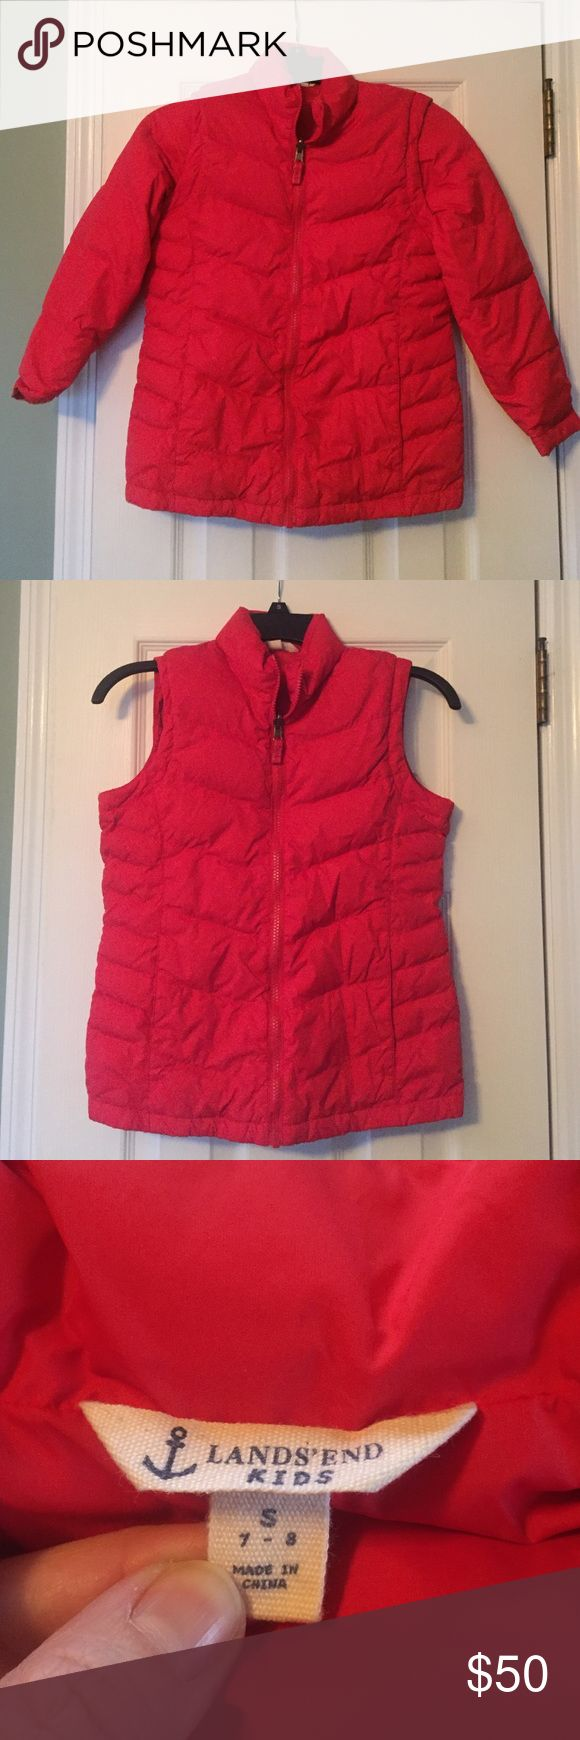 NWOT Lands End Kids jacket Brand-new never worn without tags kids lands and red down jacket sleeves can be removed to wear as a vest. Has two front pockets. Lands' End Jackets & Coats Puffers